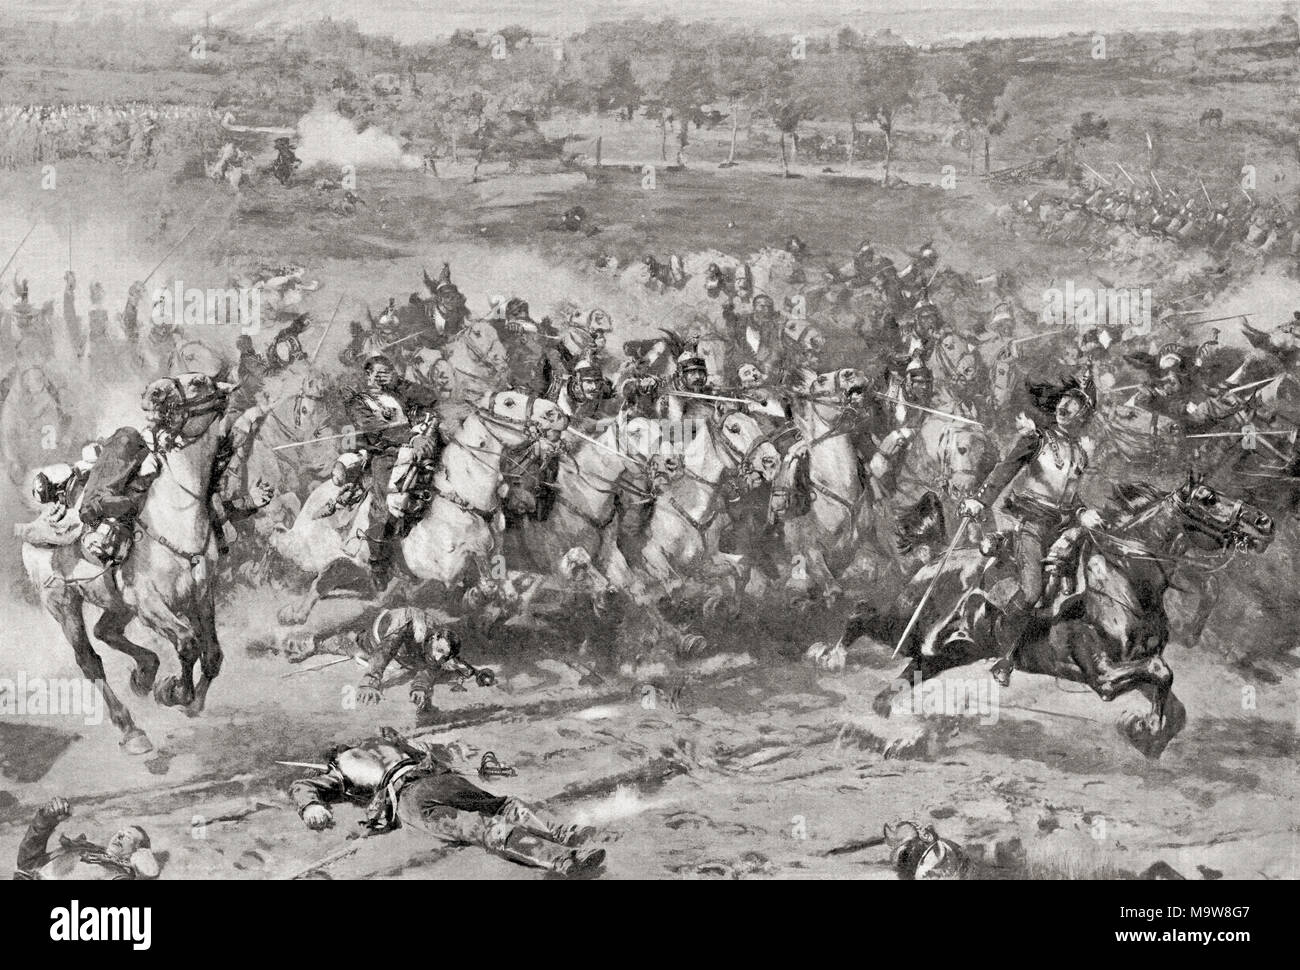 A charge of French Cuirassiers during the Franco-Prussian War of 1870.  From Hutchinson's History of the Nations, published 1915 - Stock Image